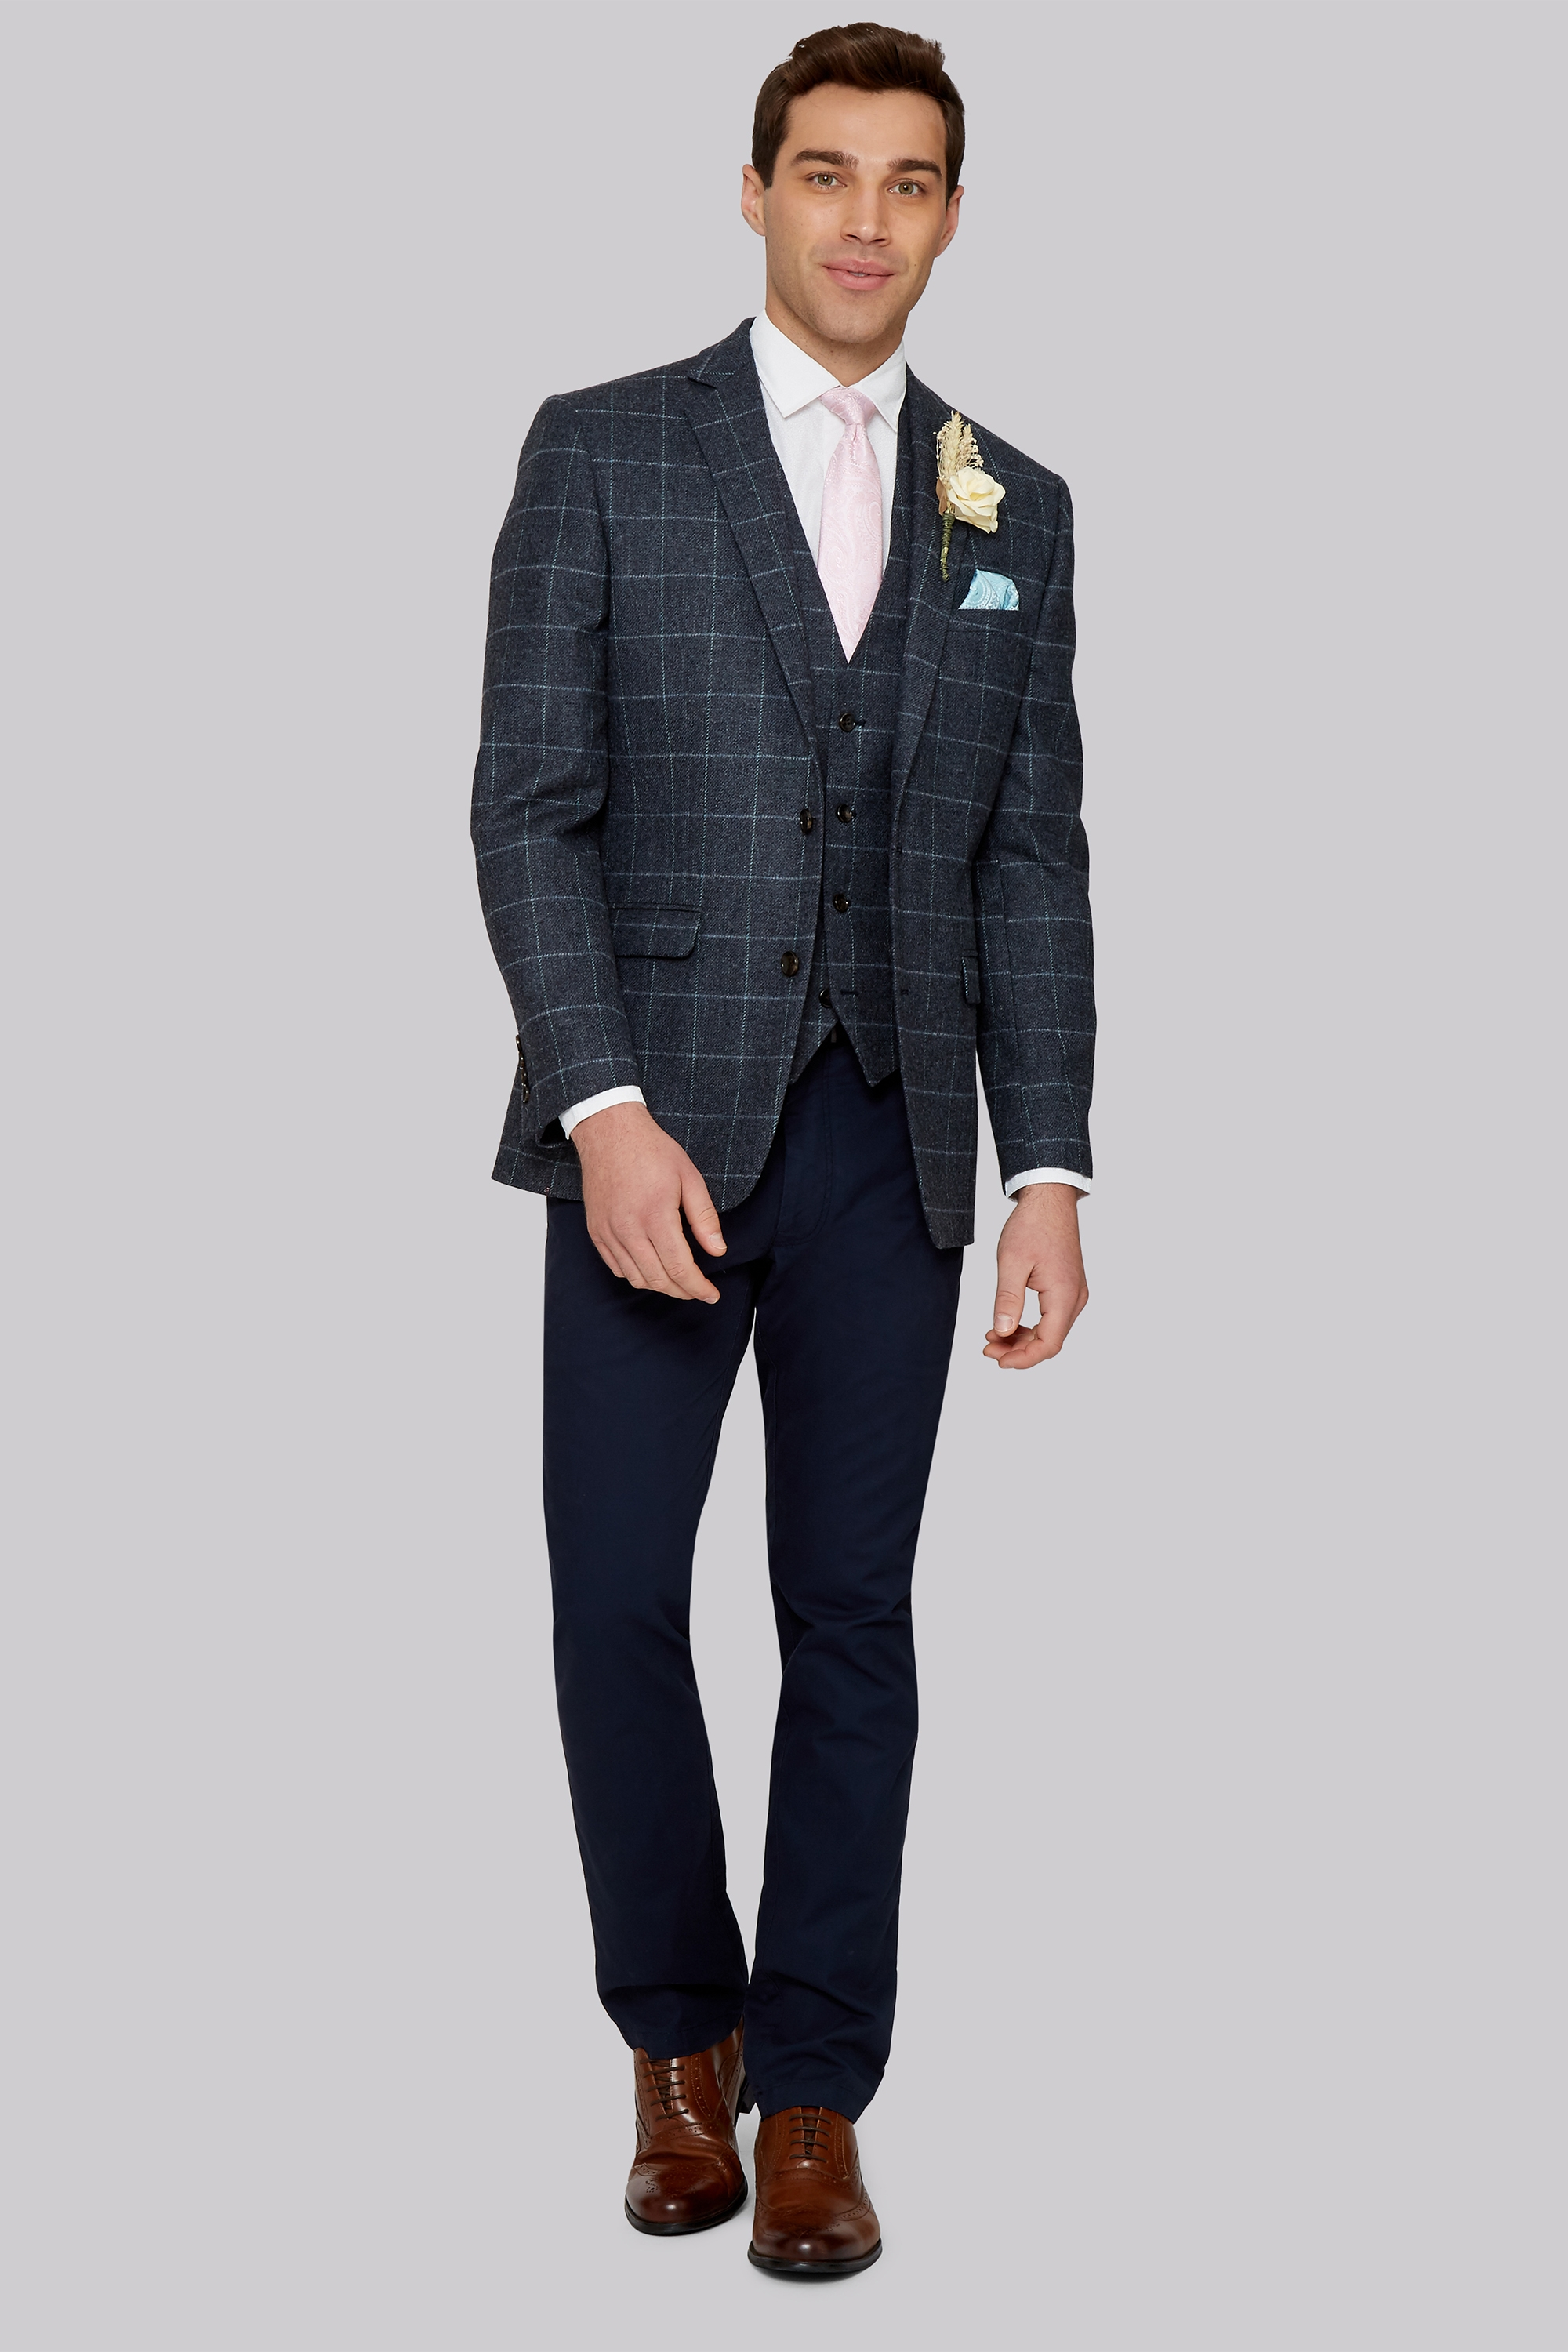 Moss 1851 Tailored Fit British Wool Blue Grey Windowpane Jacket